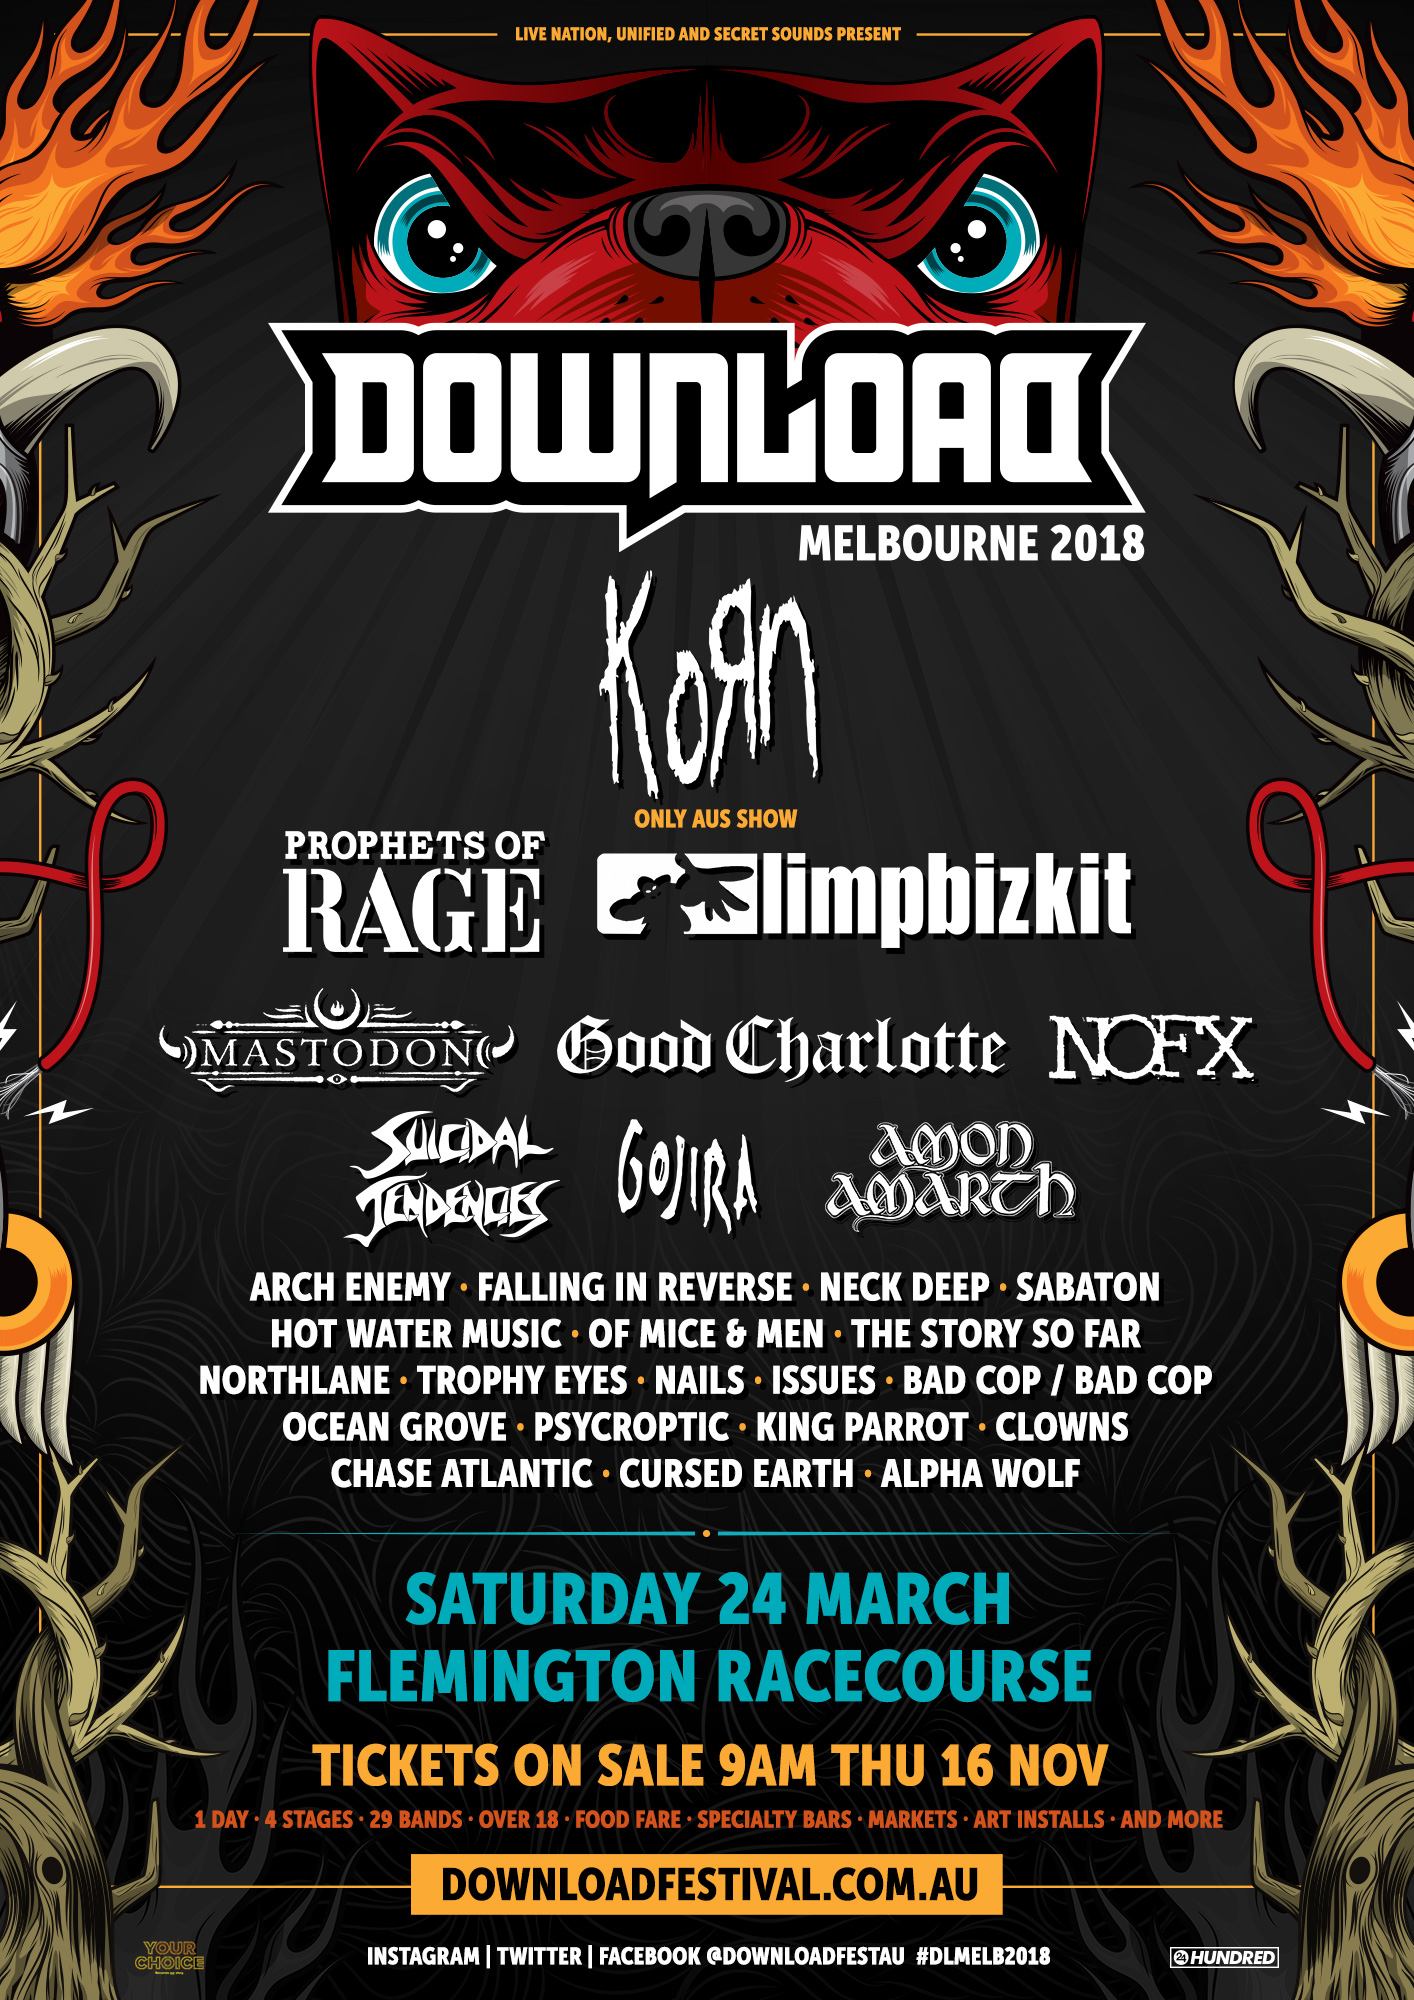 Download Festival Melbourne 2018